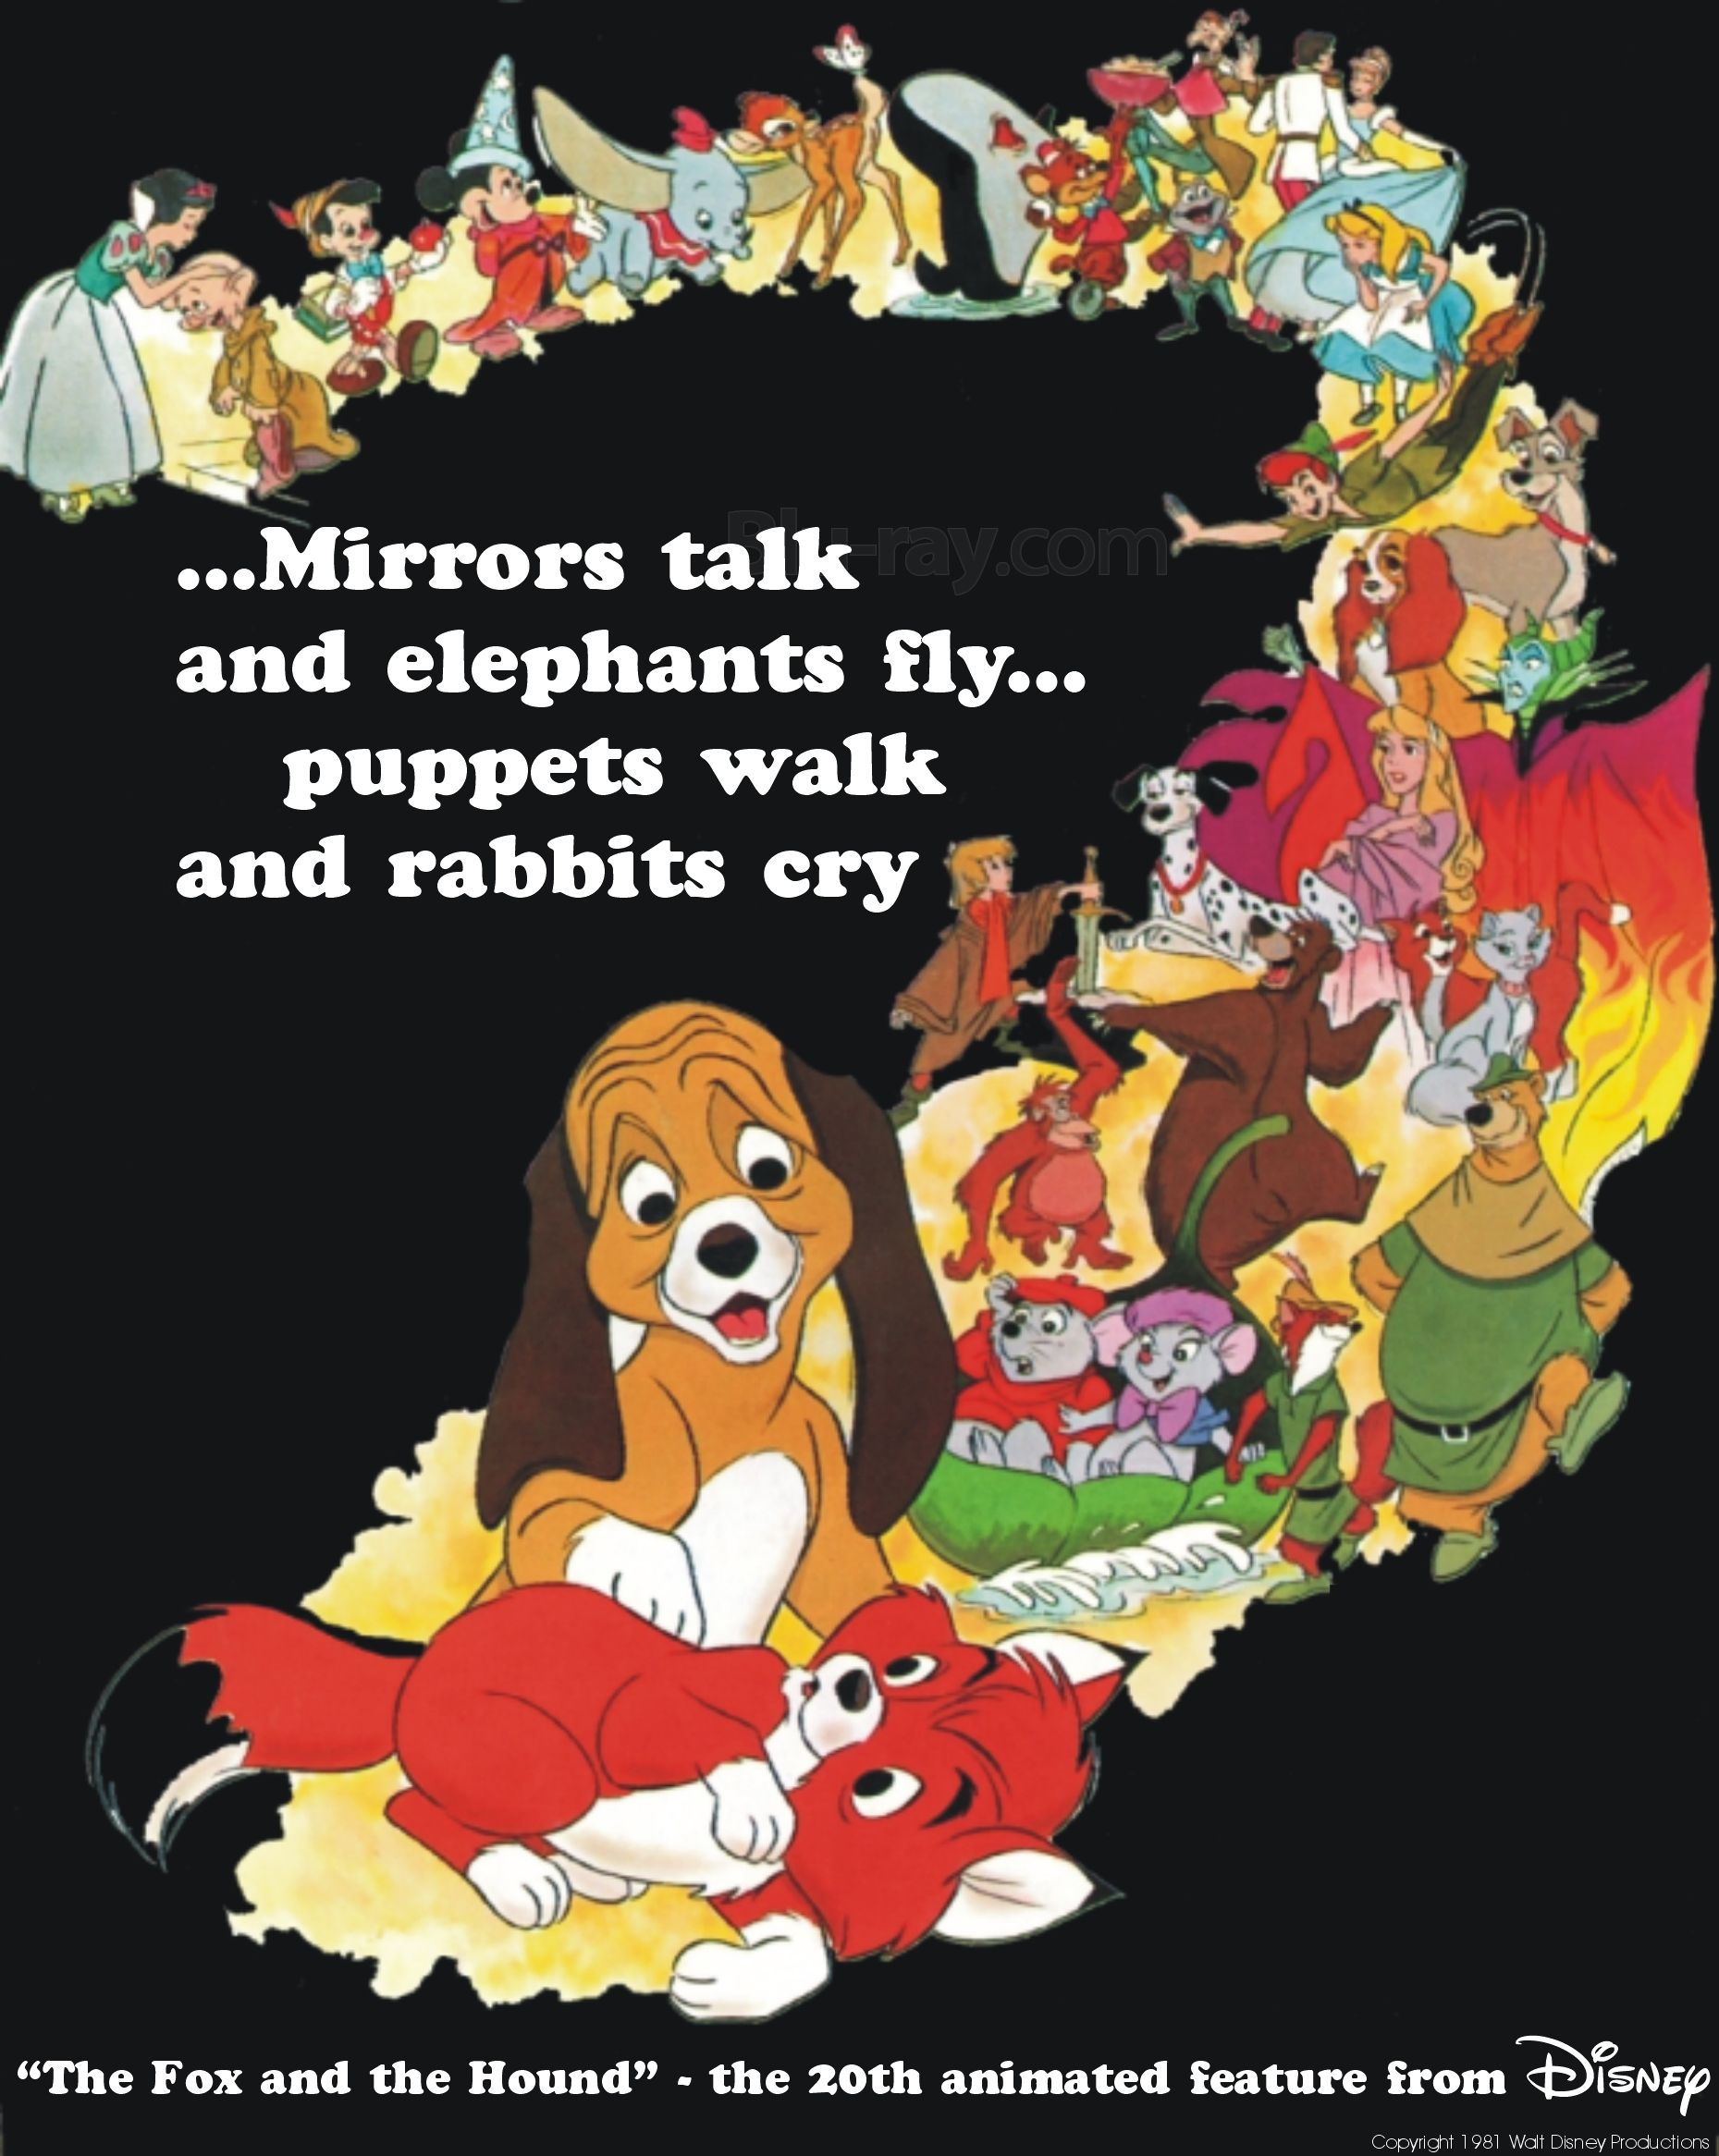 the end walt disney productions - Google Search